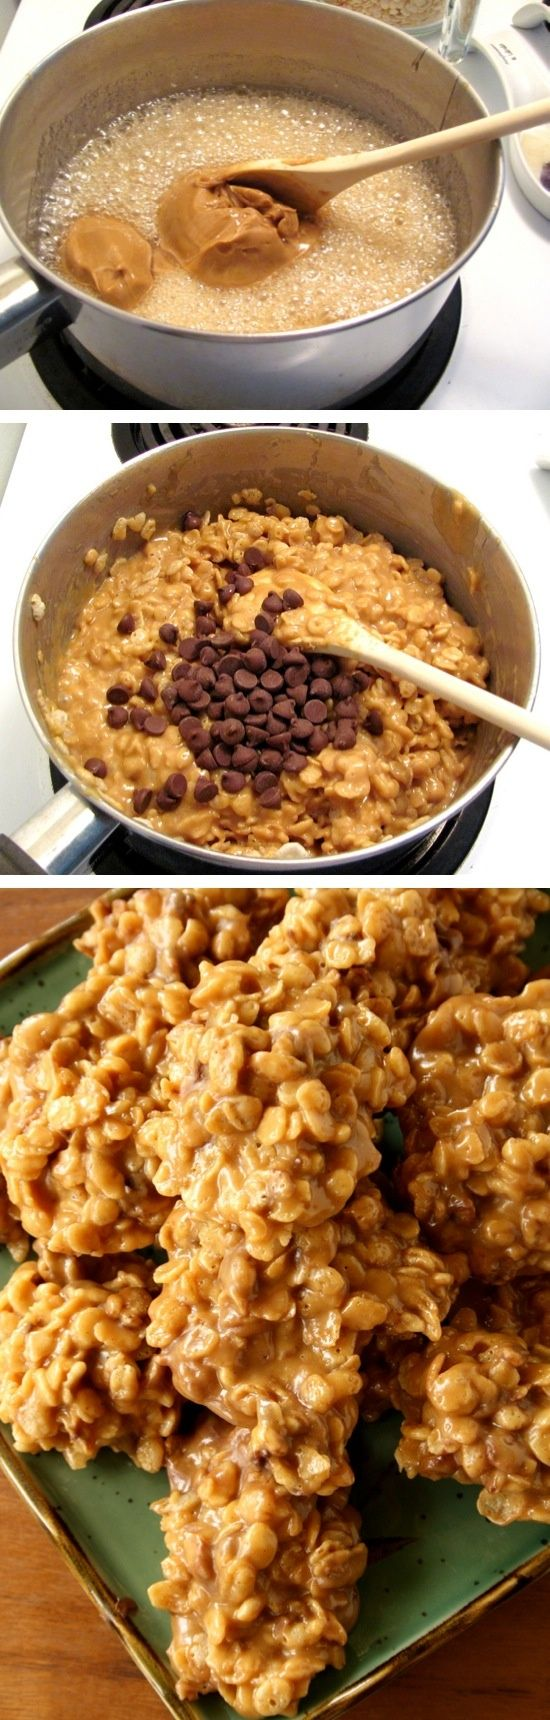 Stove Top Peanut Butter Cereal Cookies | No baking required! Made with Special K, but you could also make them with Rice Krispies or any other cereal. Wendy Schultz via Detta Ringuette via Pinterest  - Biscuits & Cookies.